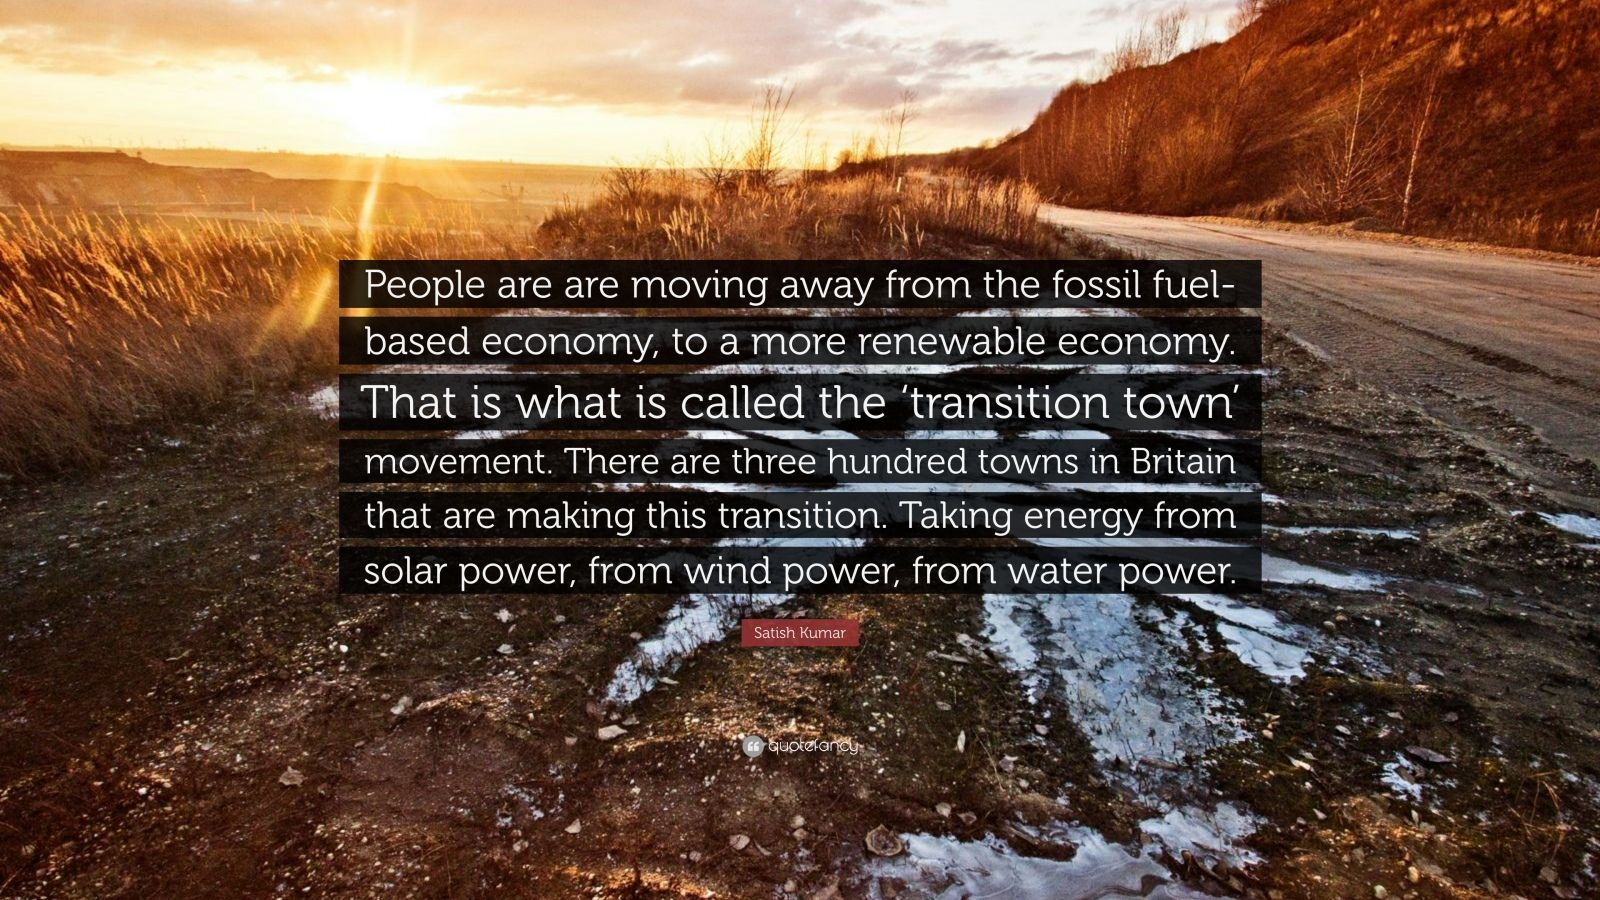 """Satish Kumar Quote: """"People are are moving away from the fossil fuel-based economy, to a more renewable economy. That is what is called the 'transition town' movement. There are three hundred towns in Britain that are making this transition. Taking energy from solar power, from wind power, from water power."""""""